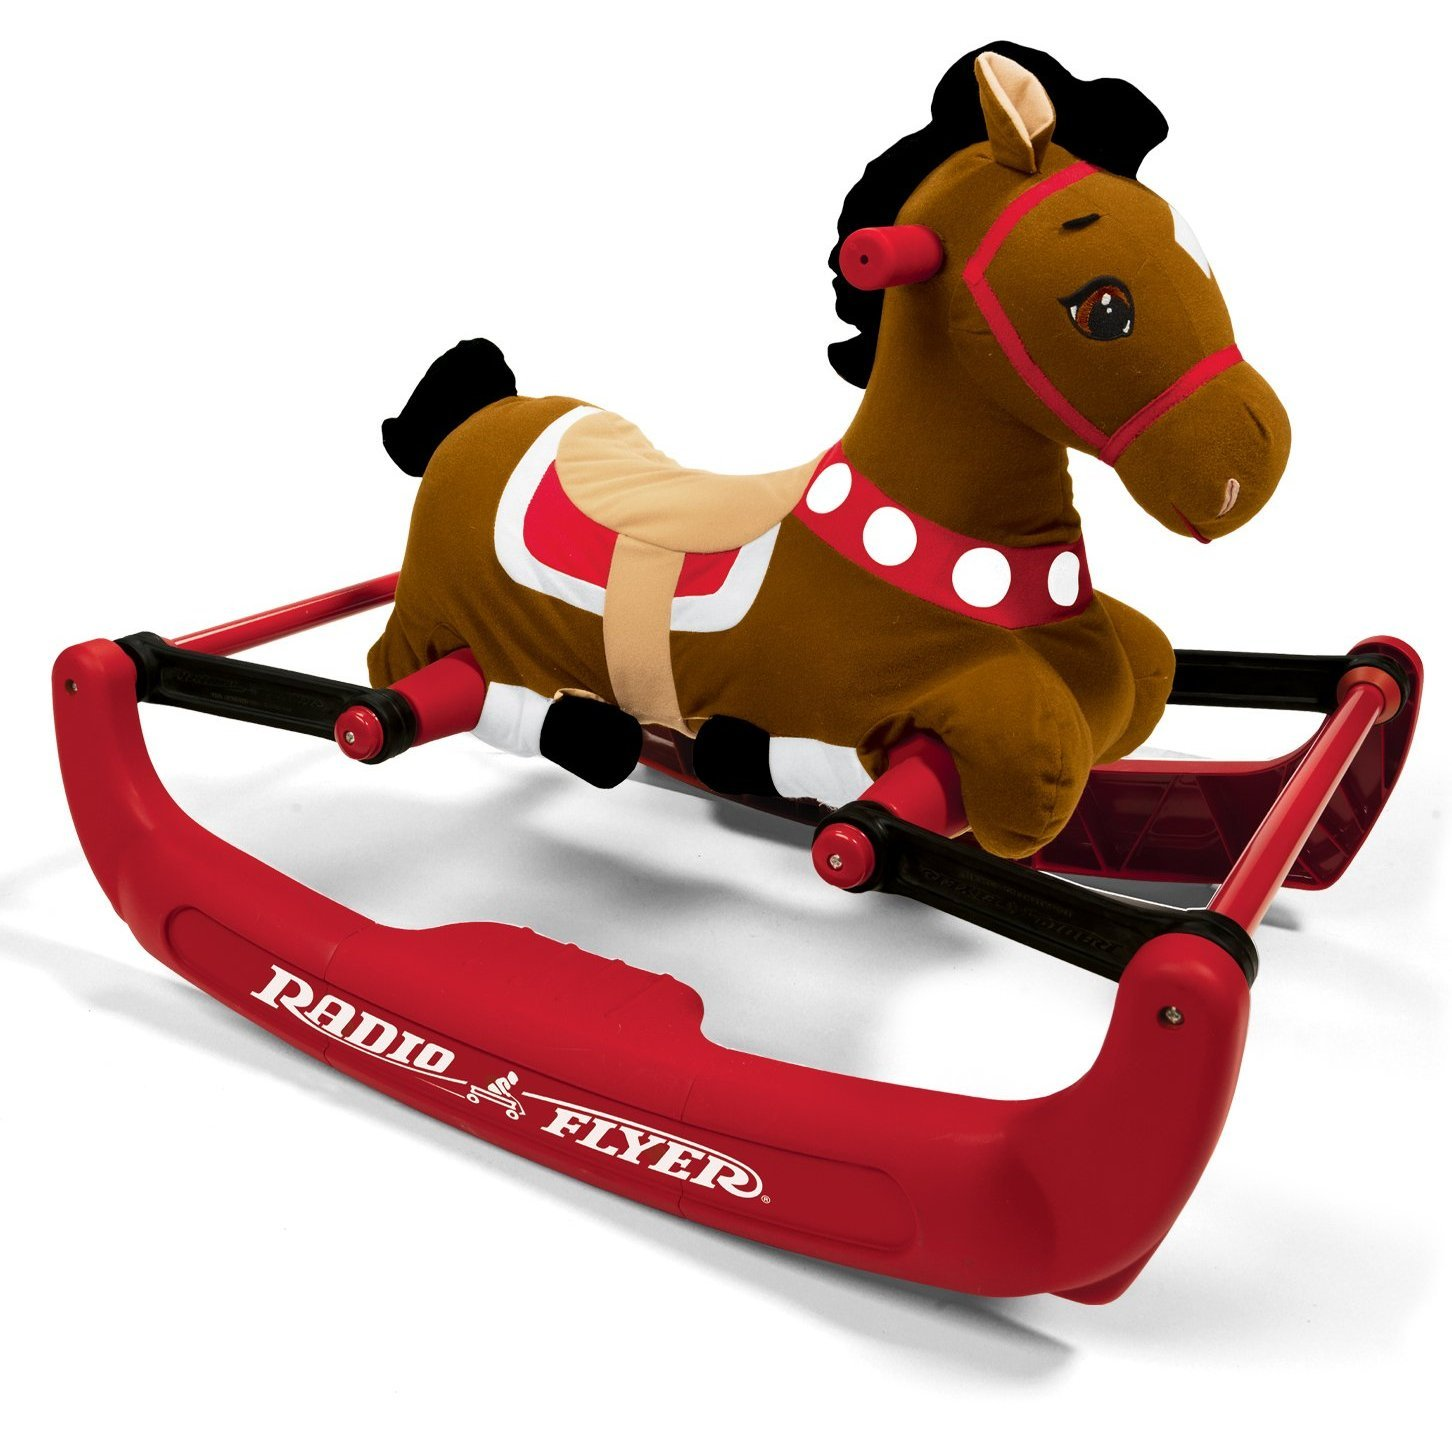 Radio Flyer Soft Rock and Bounce Pony with Sound (Discontinued by manufacturer)